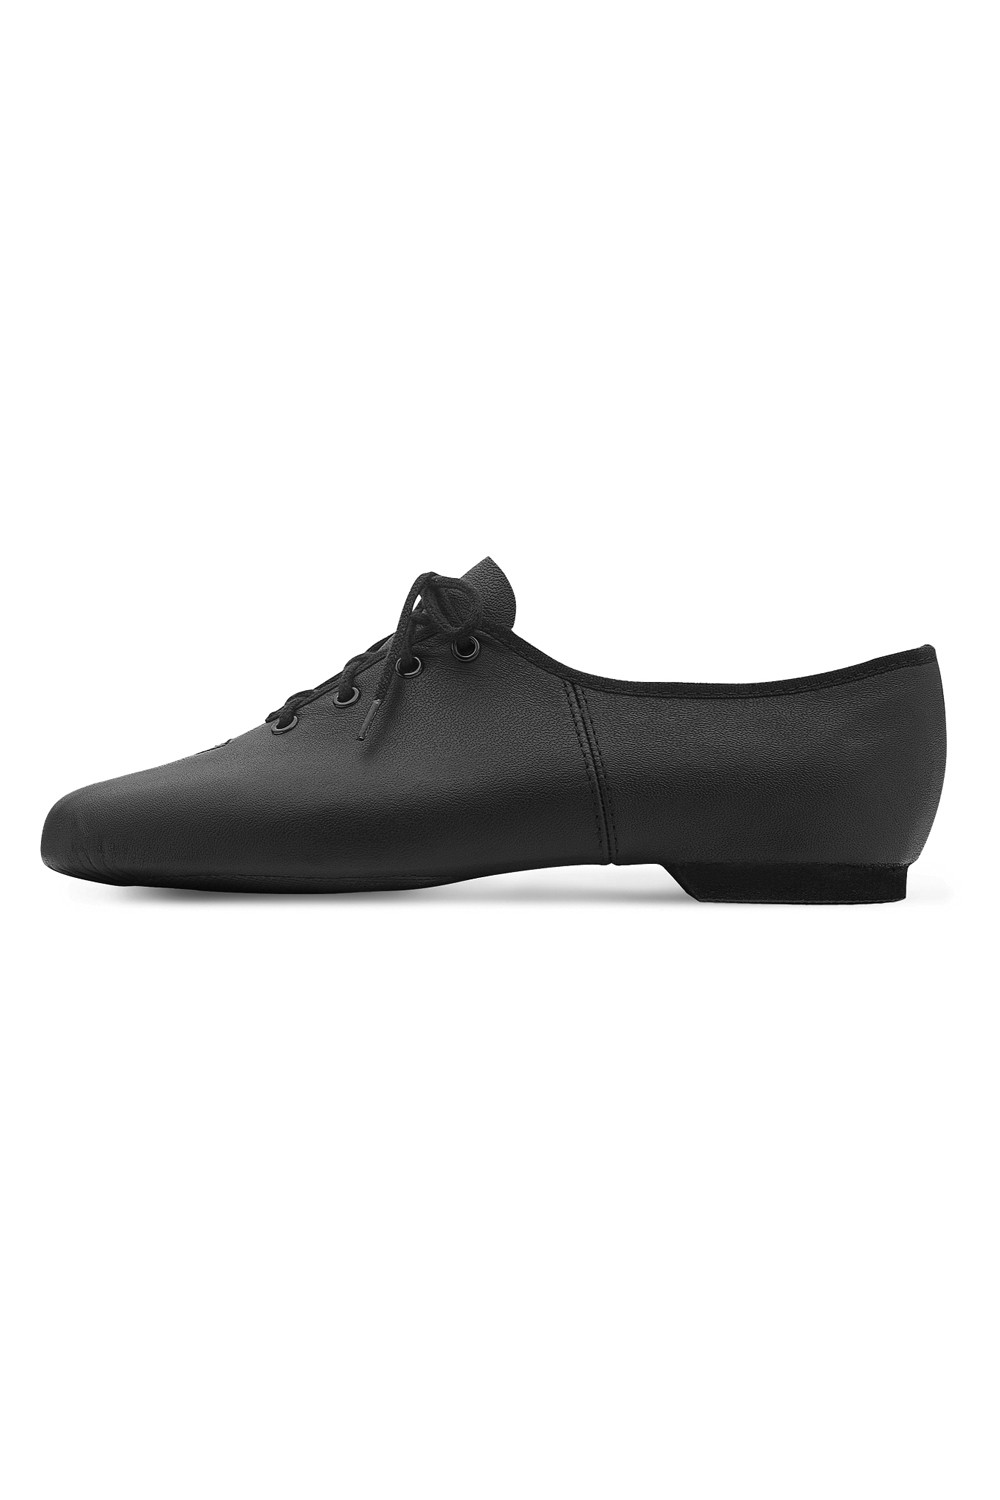 Dance Now S/s Lea Jazz Shoe Girl's Jazz Shoes